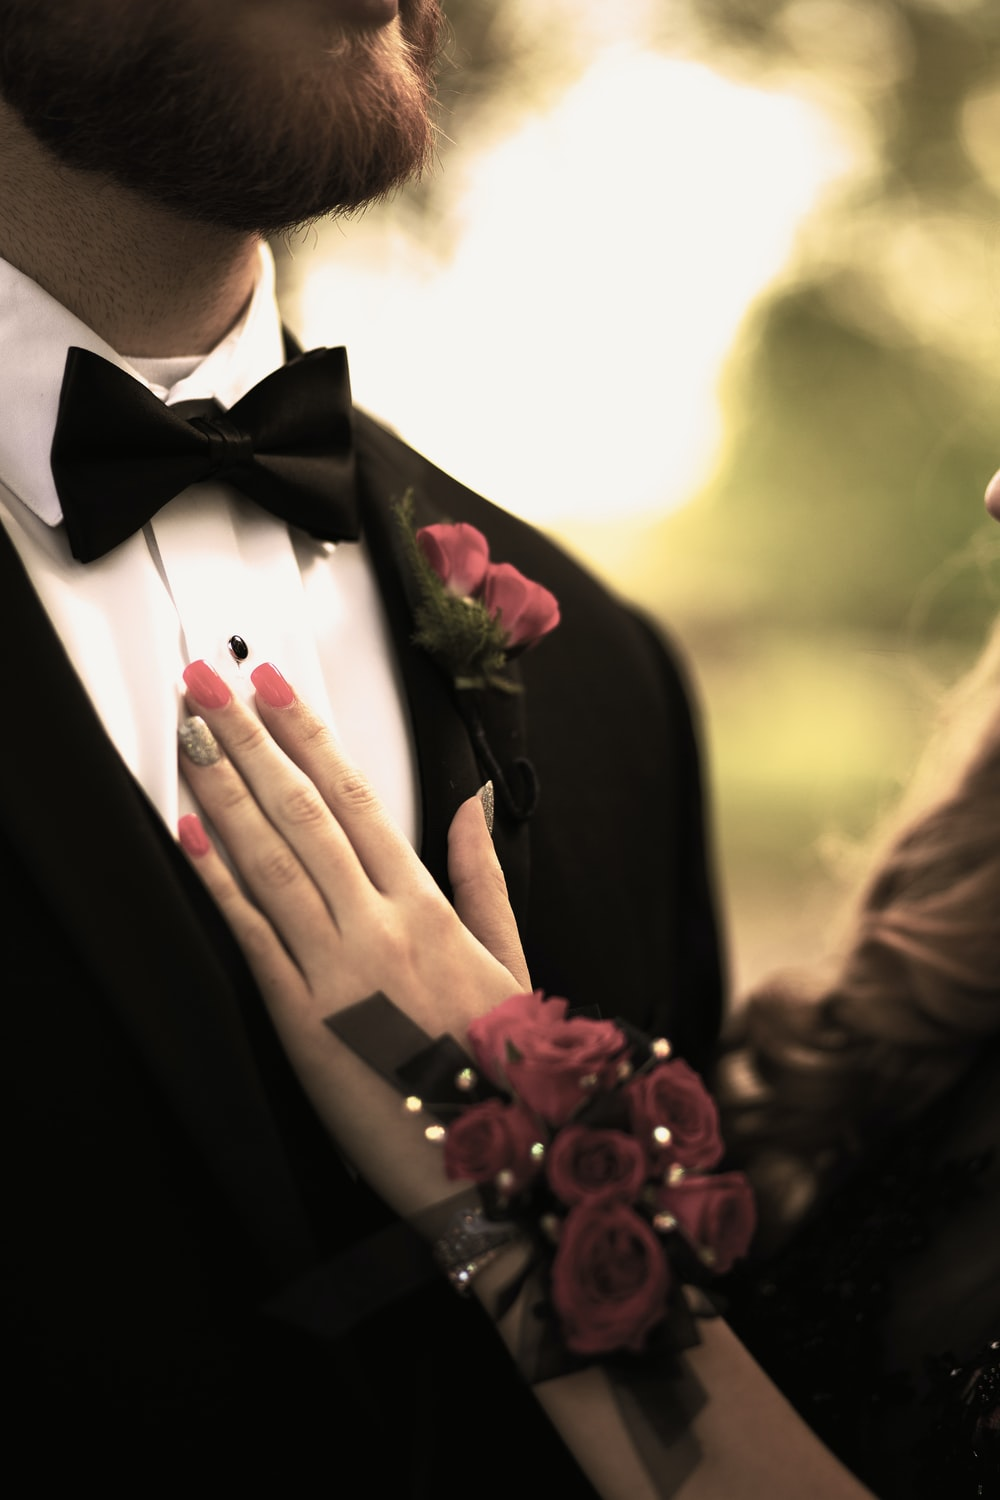 man in black suit jacket holding red rose bouquet